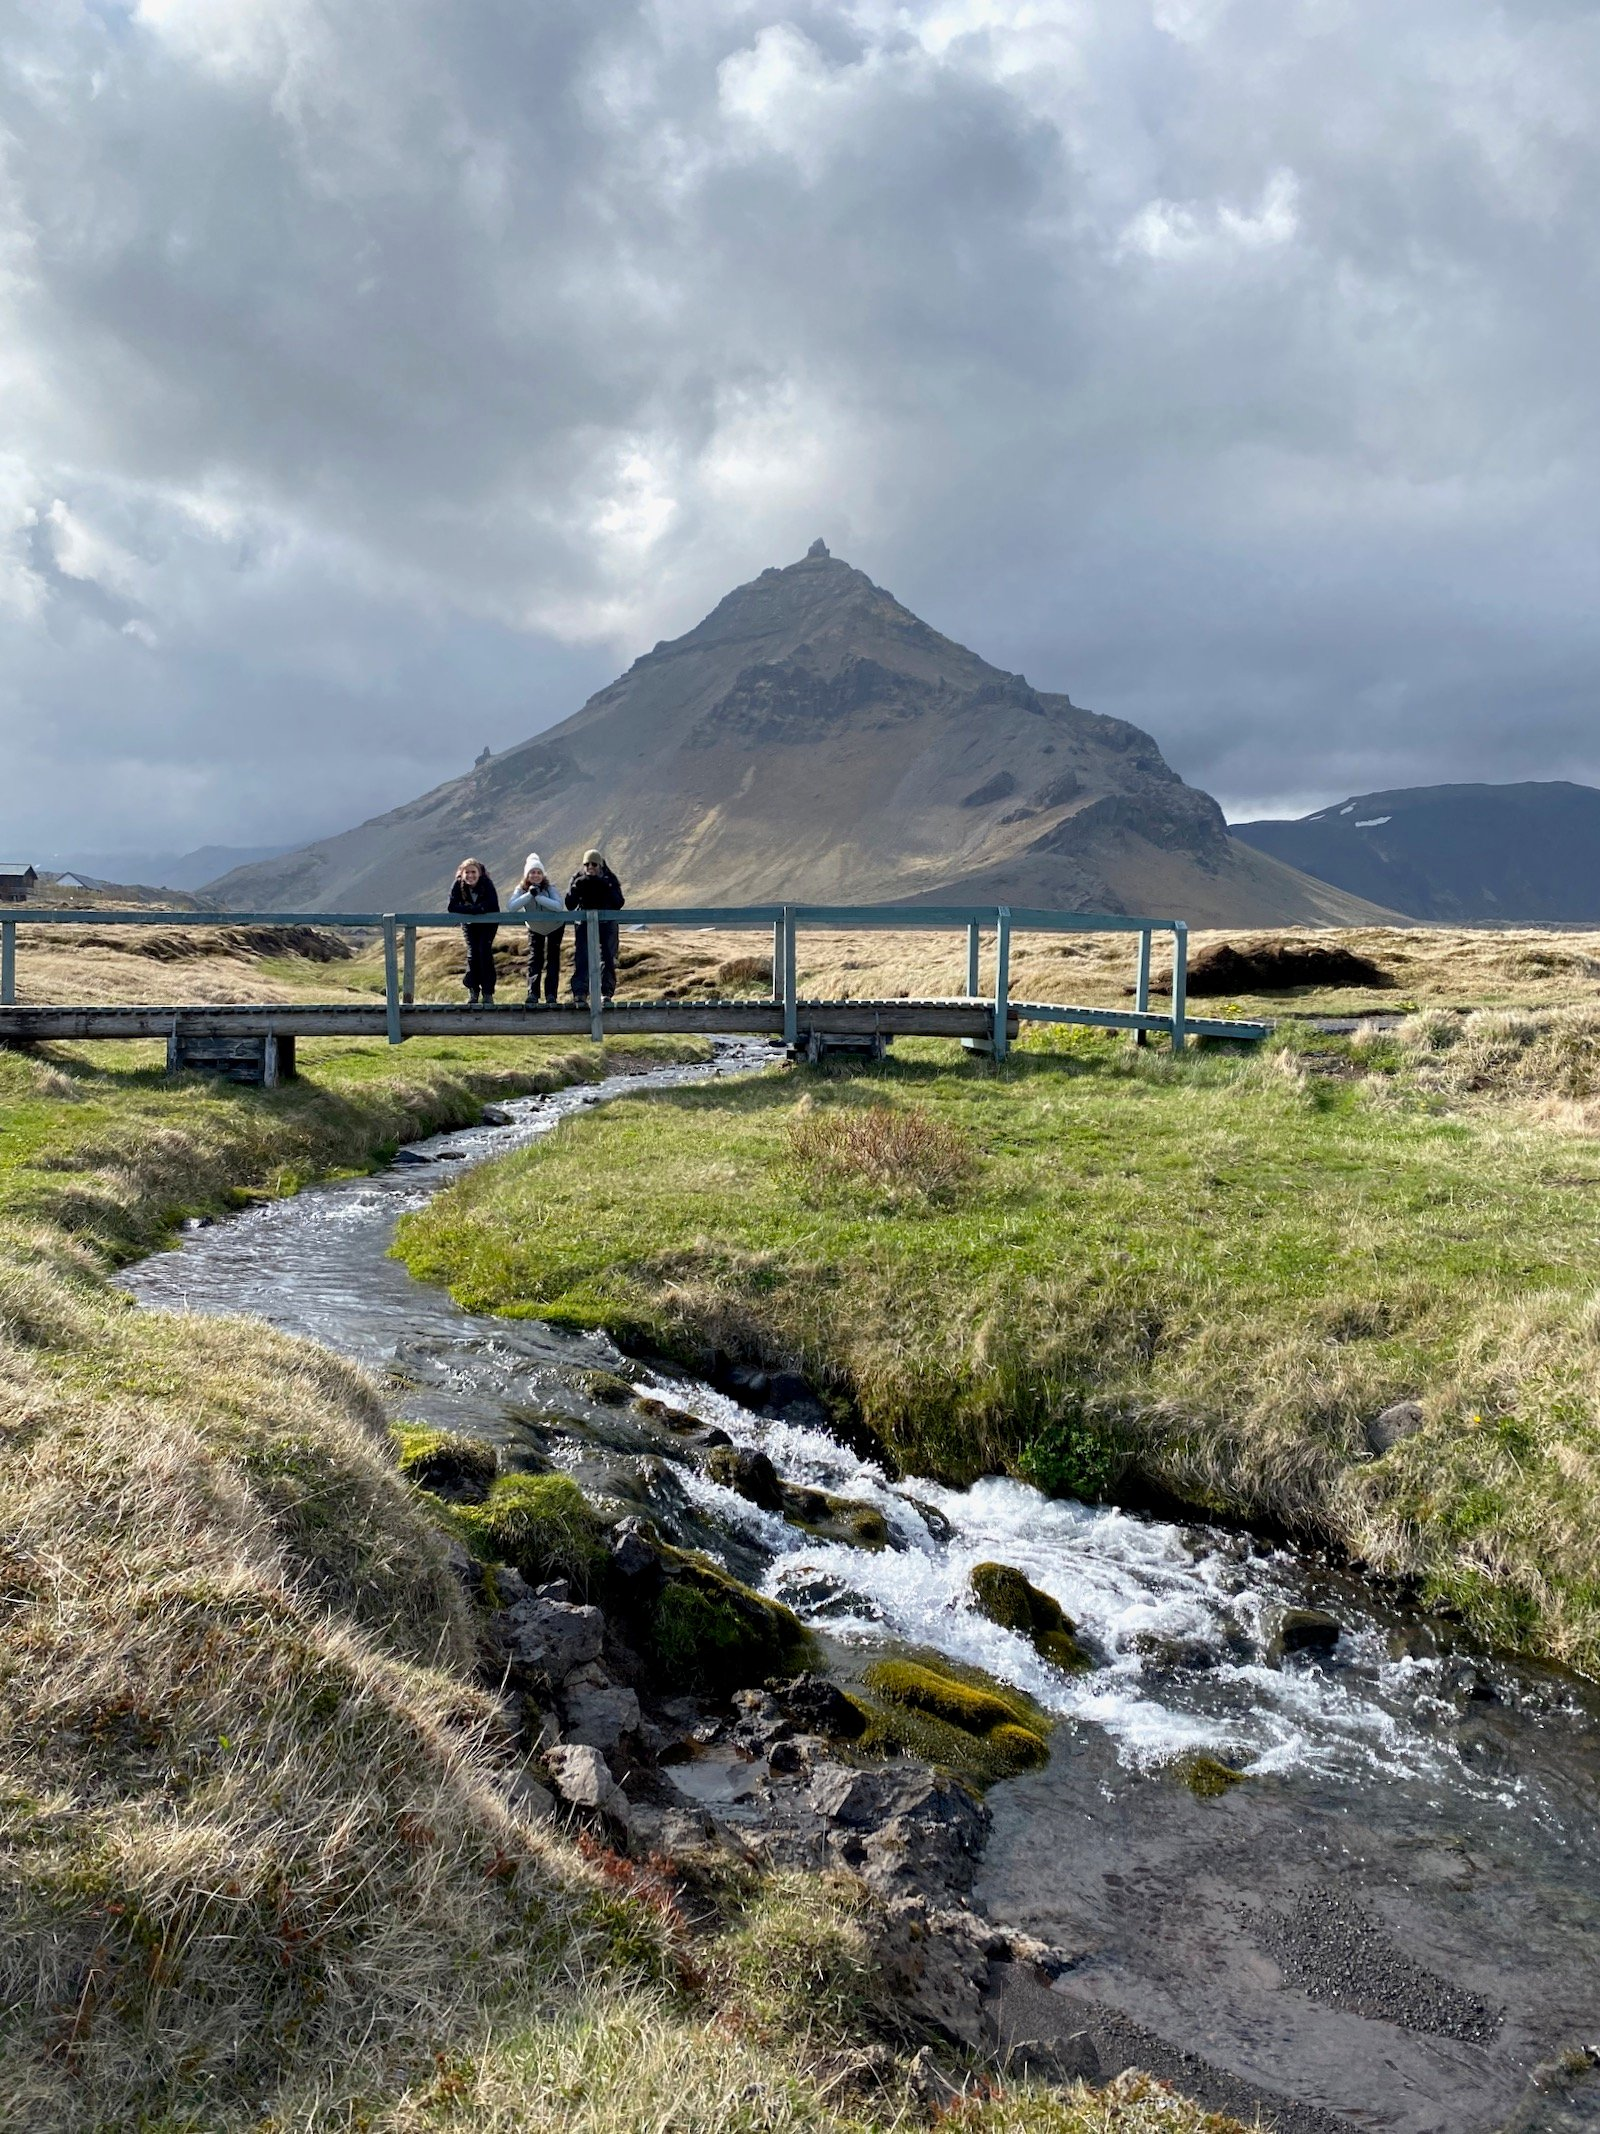 Family on small bridge overlooking a creek in Iceland.